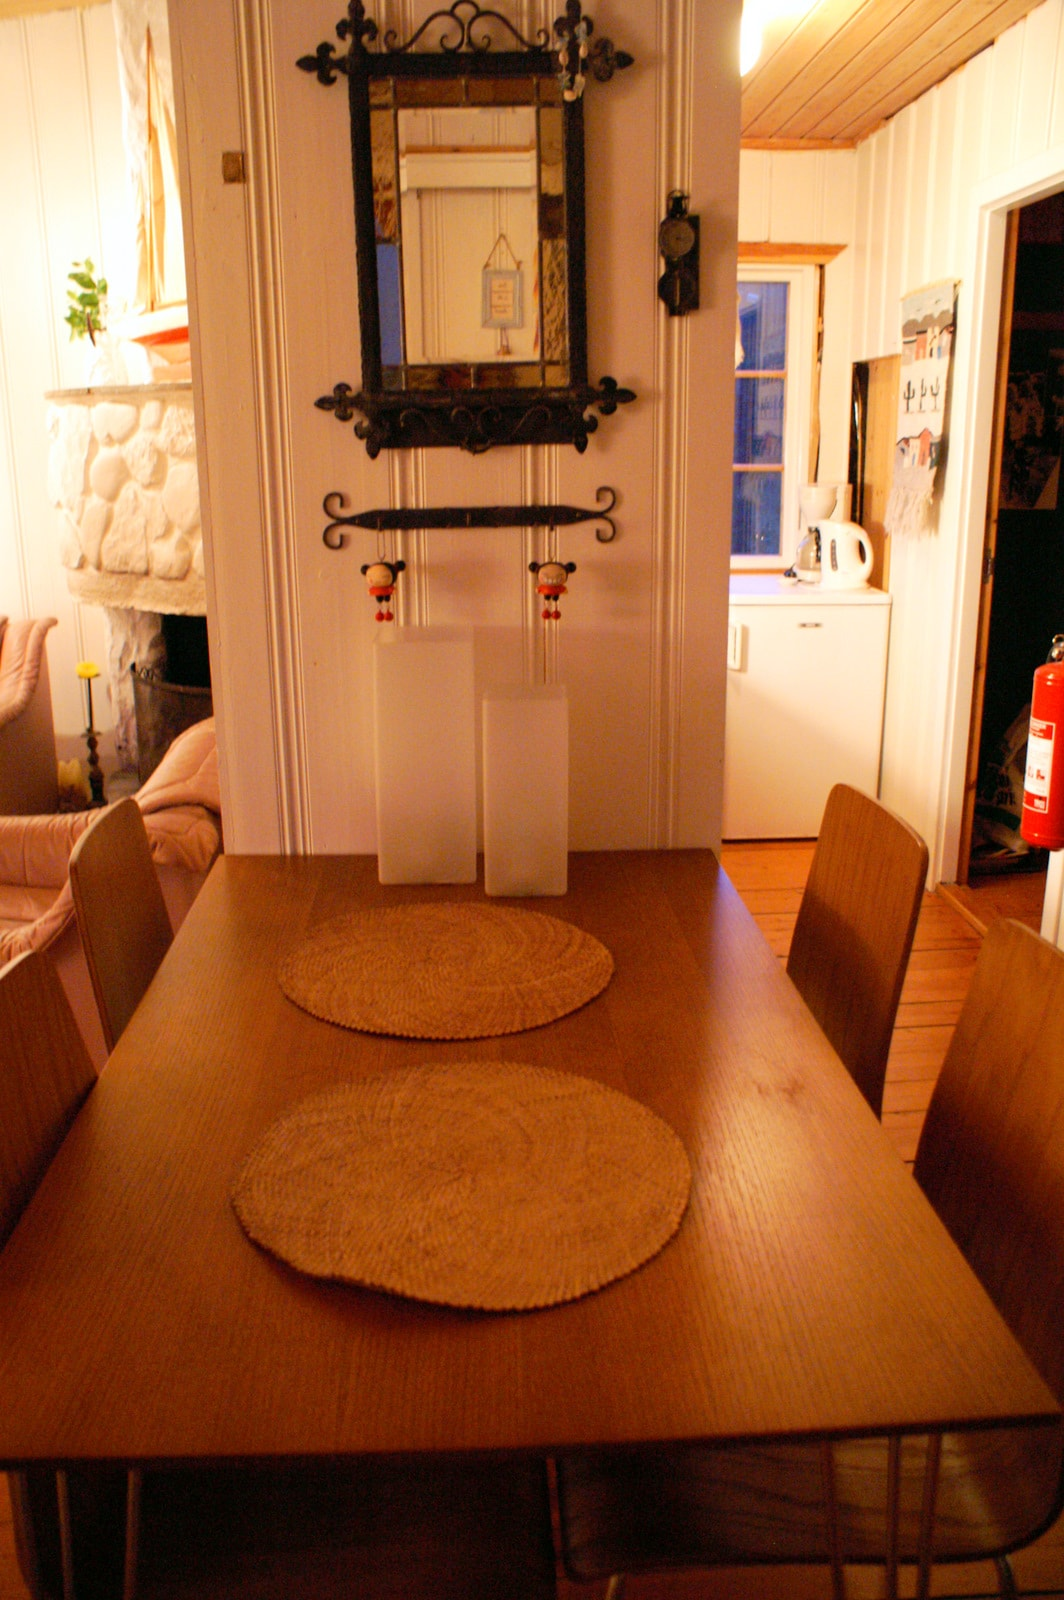 Dining table, fireplace to the left, kitchen to the right.